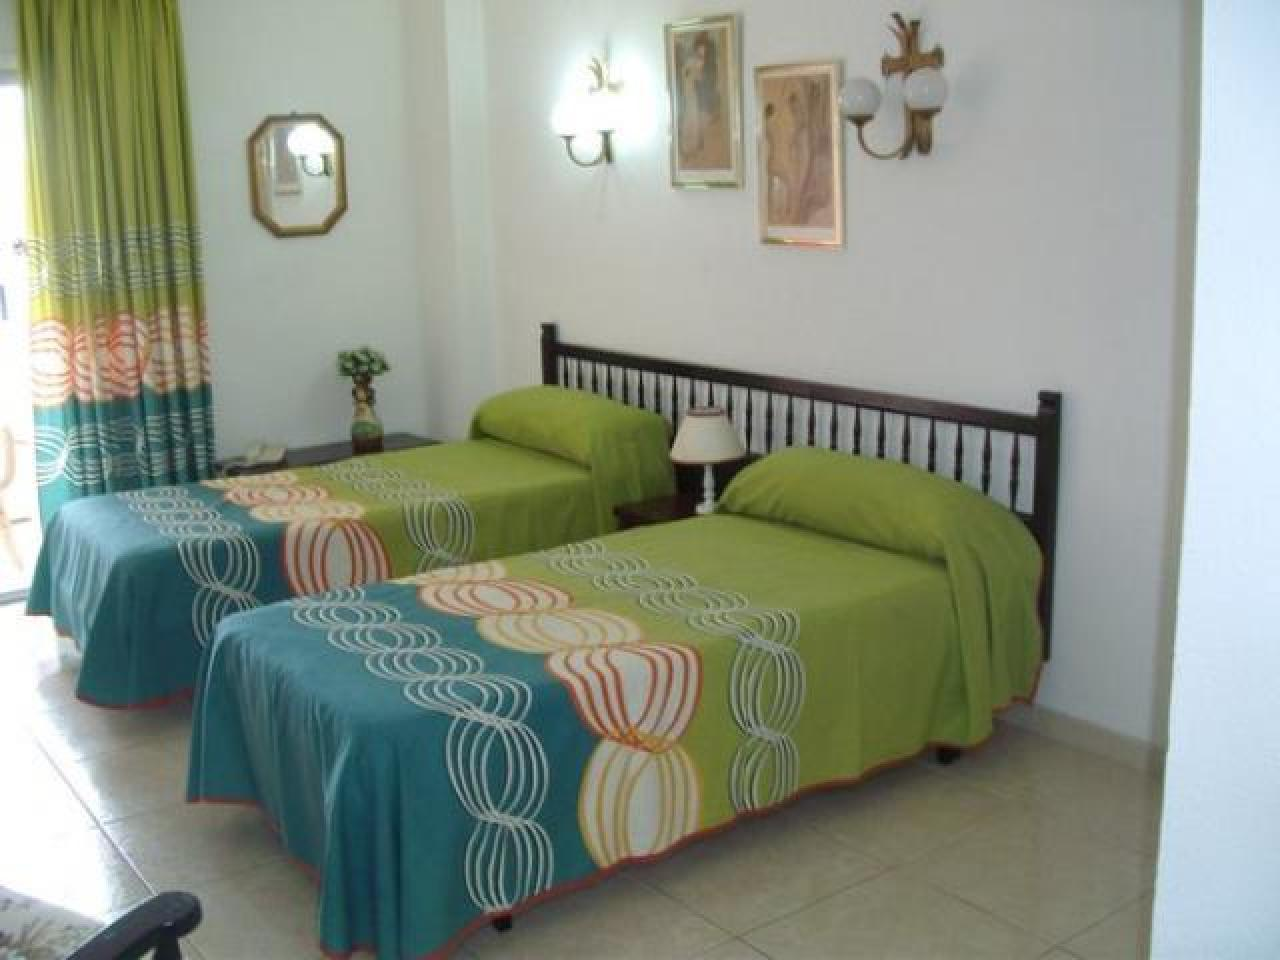 Real estate in Tenerife for rent - 1